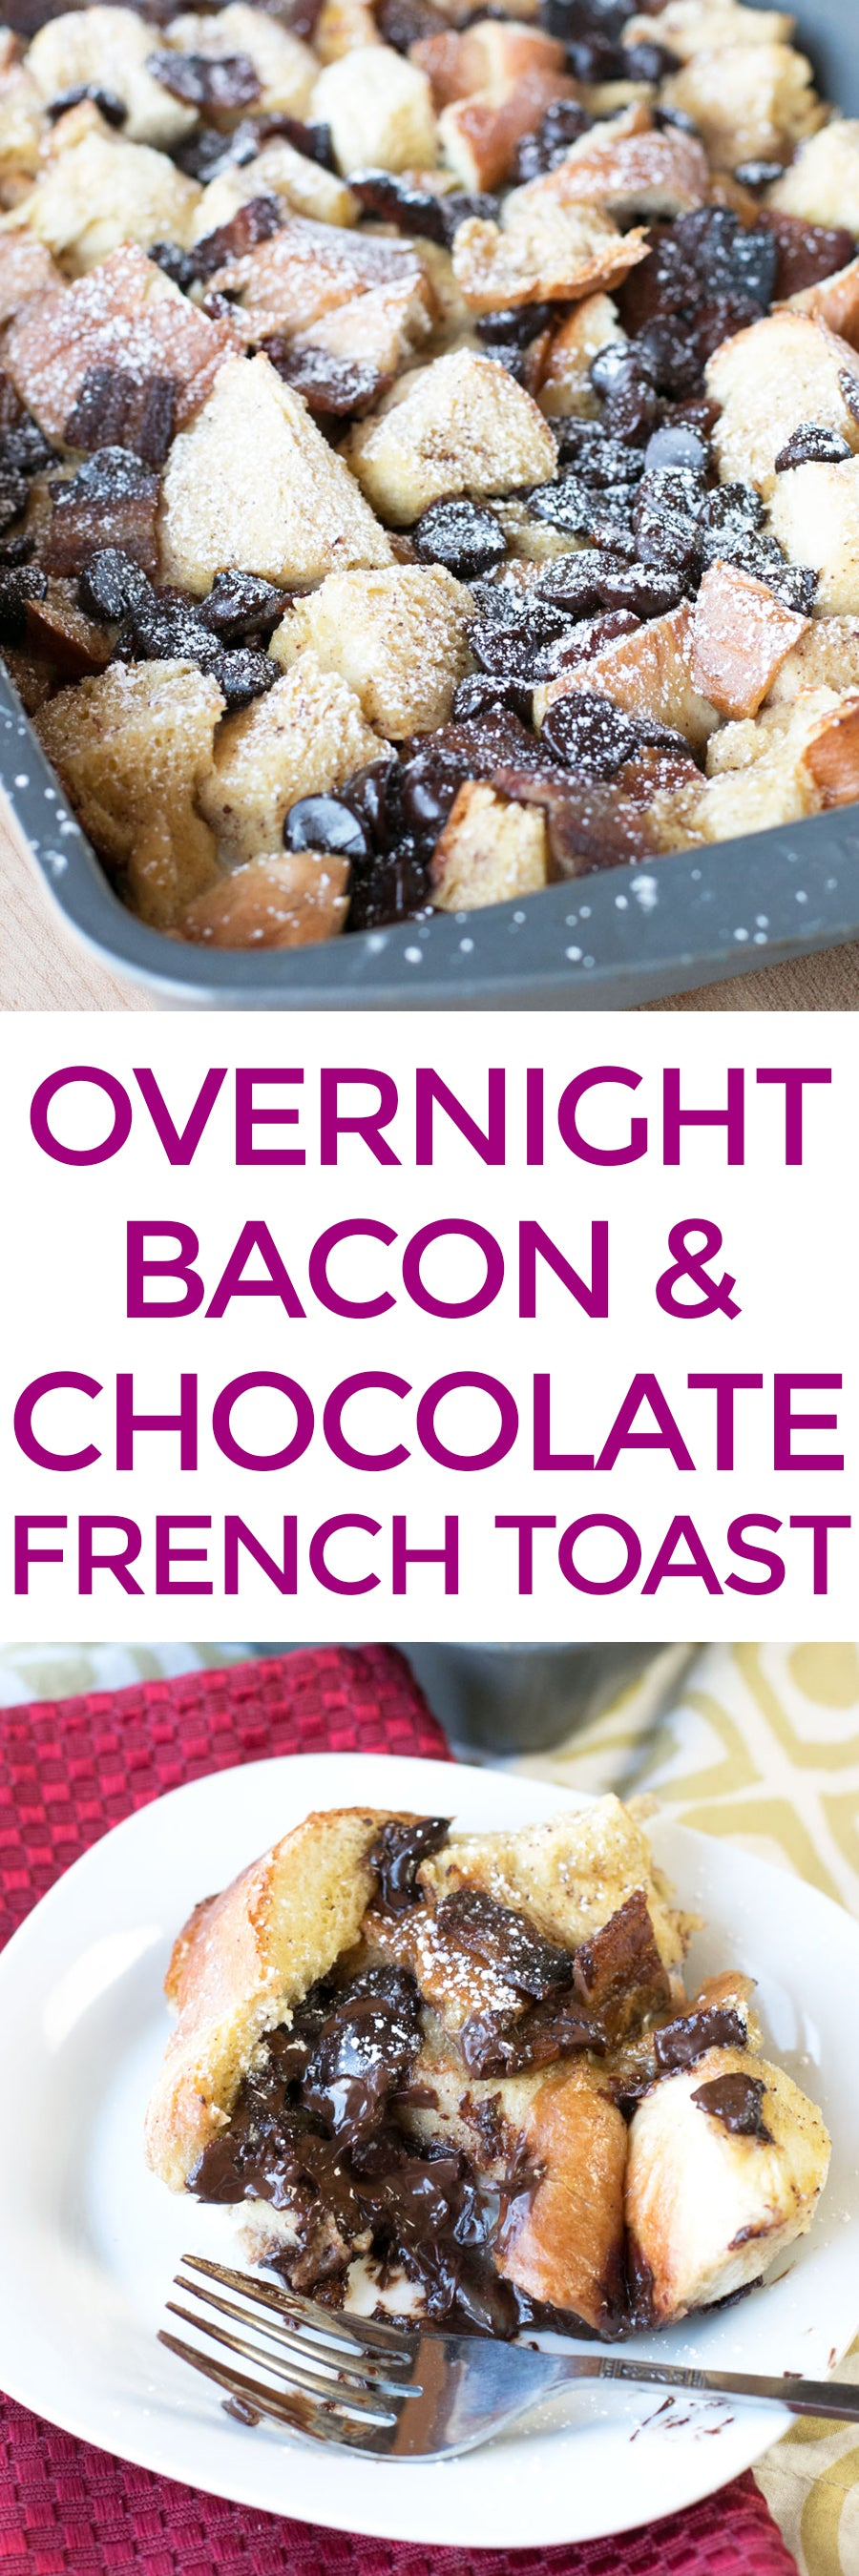 Overnight Bacon & Chocolate French Toast | pigofthemonth.com #bacon #breakfast #brunch #frenchtoast